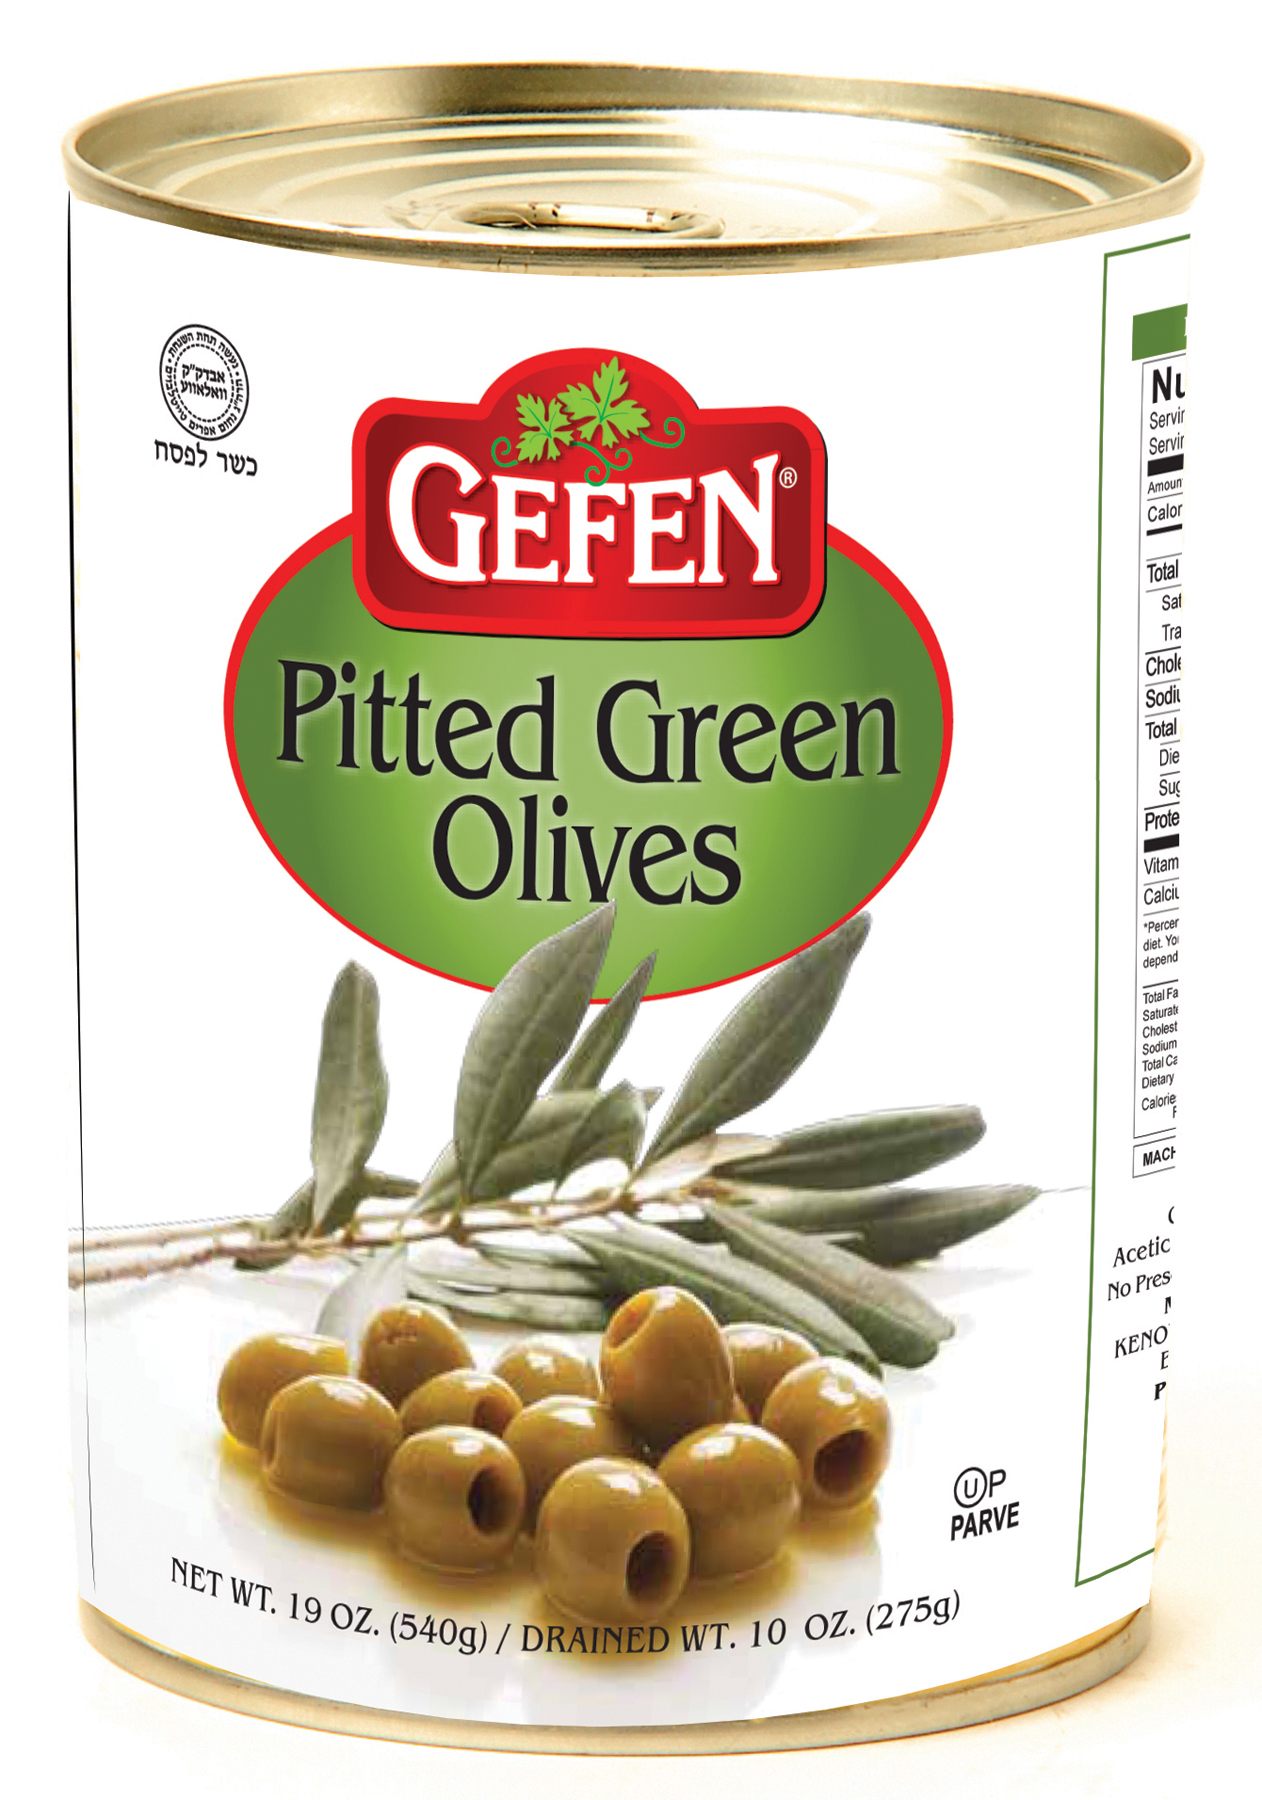 Gefen Pitted Green Olives, 19 Oz by Gefen